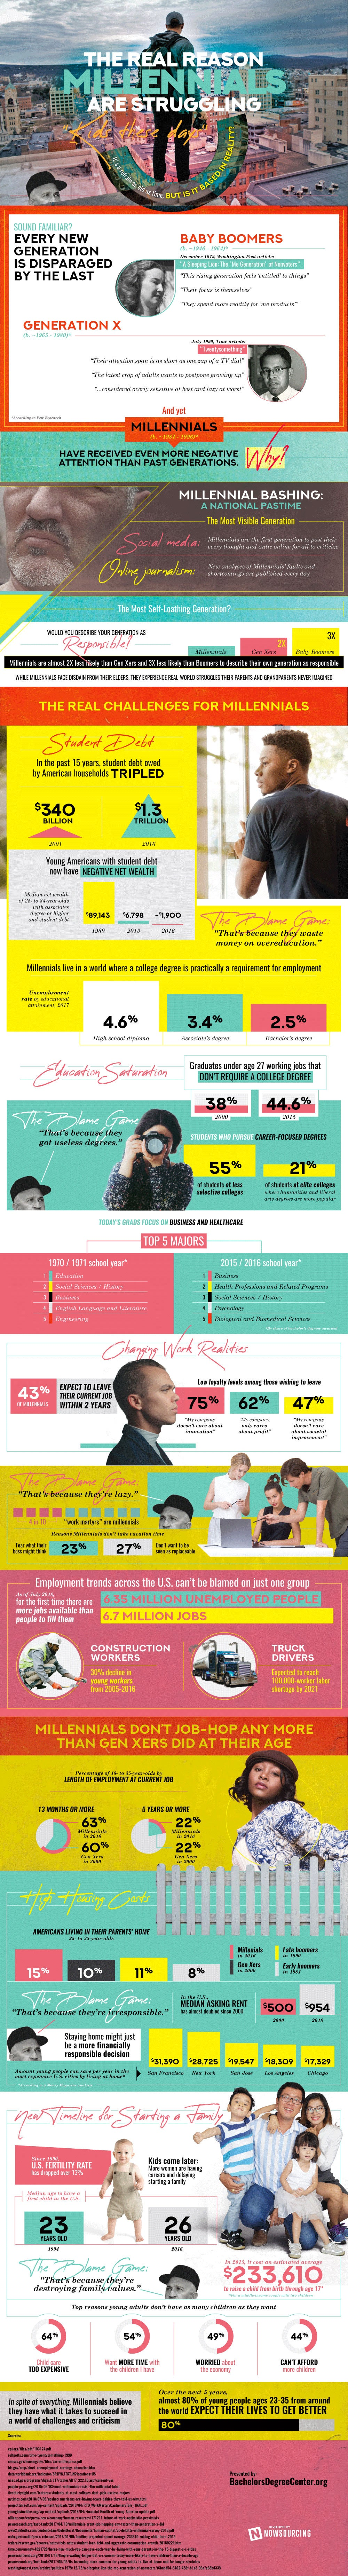 The Real Reasons Millennials Are Struggling (Infographic)